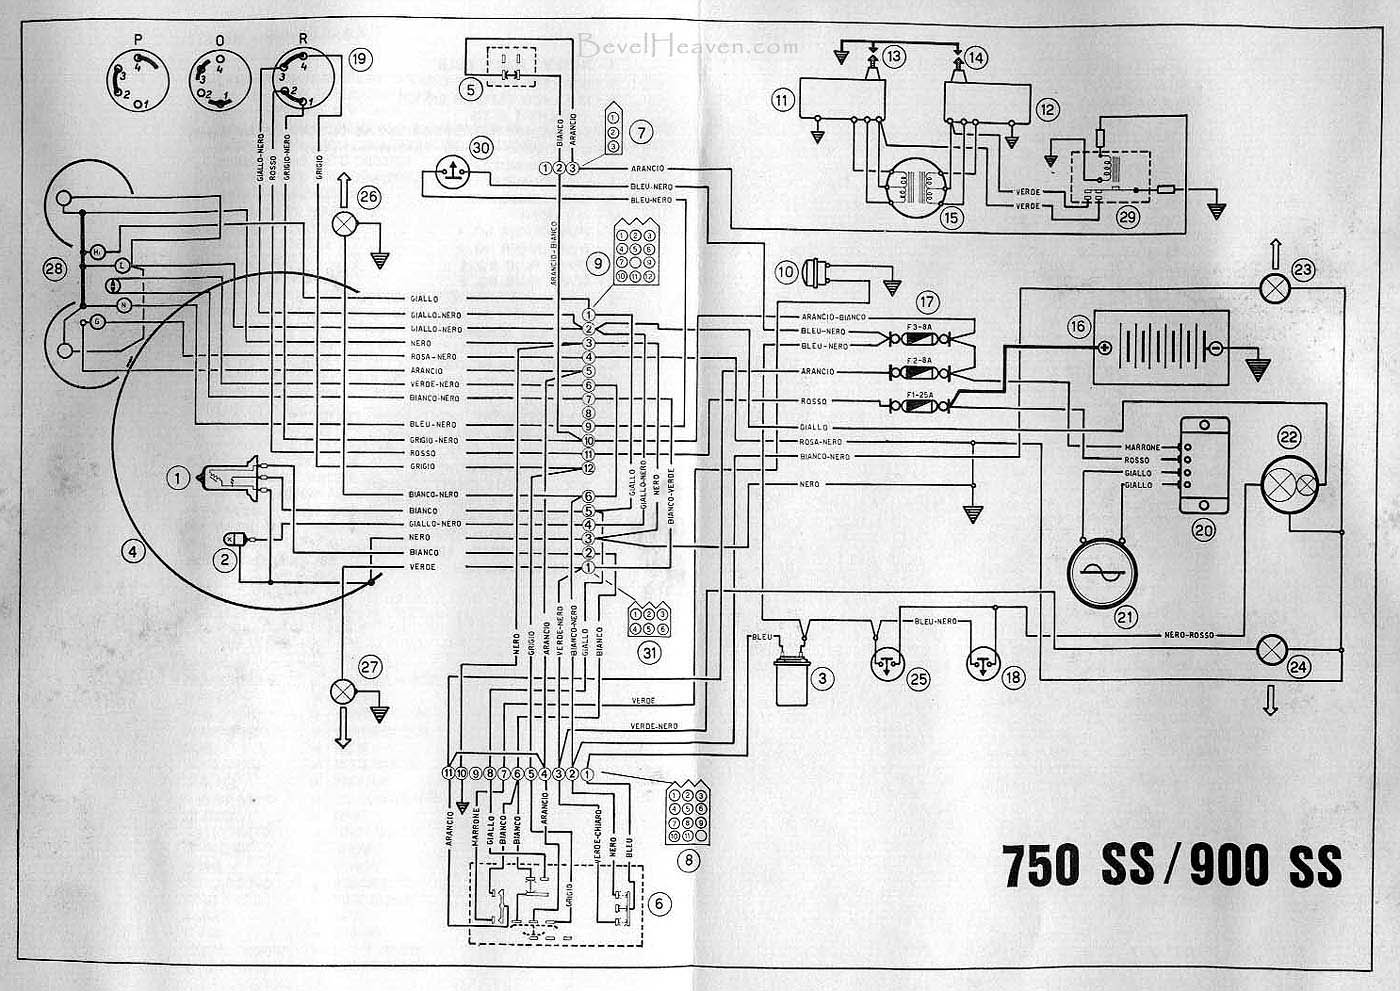 hight resolution of ducati multistrada wiring diagram get free image about ducati multistrada 1000 wiring diagram ducati multistrada 1200